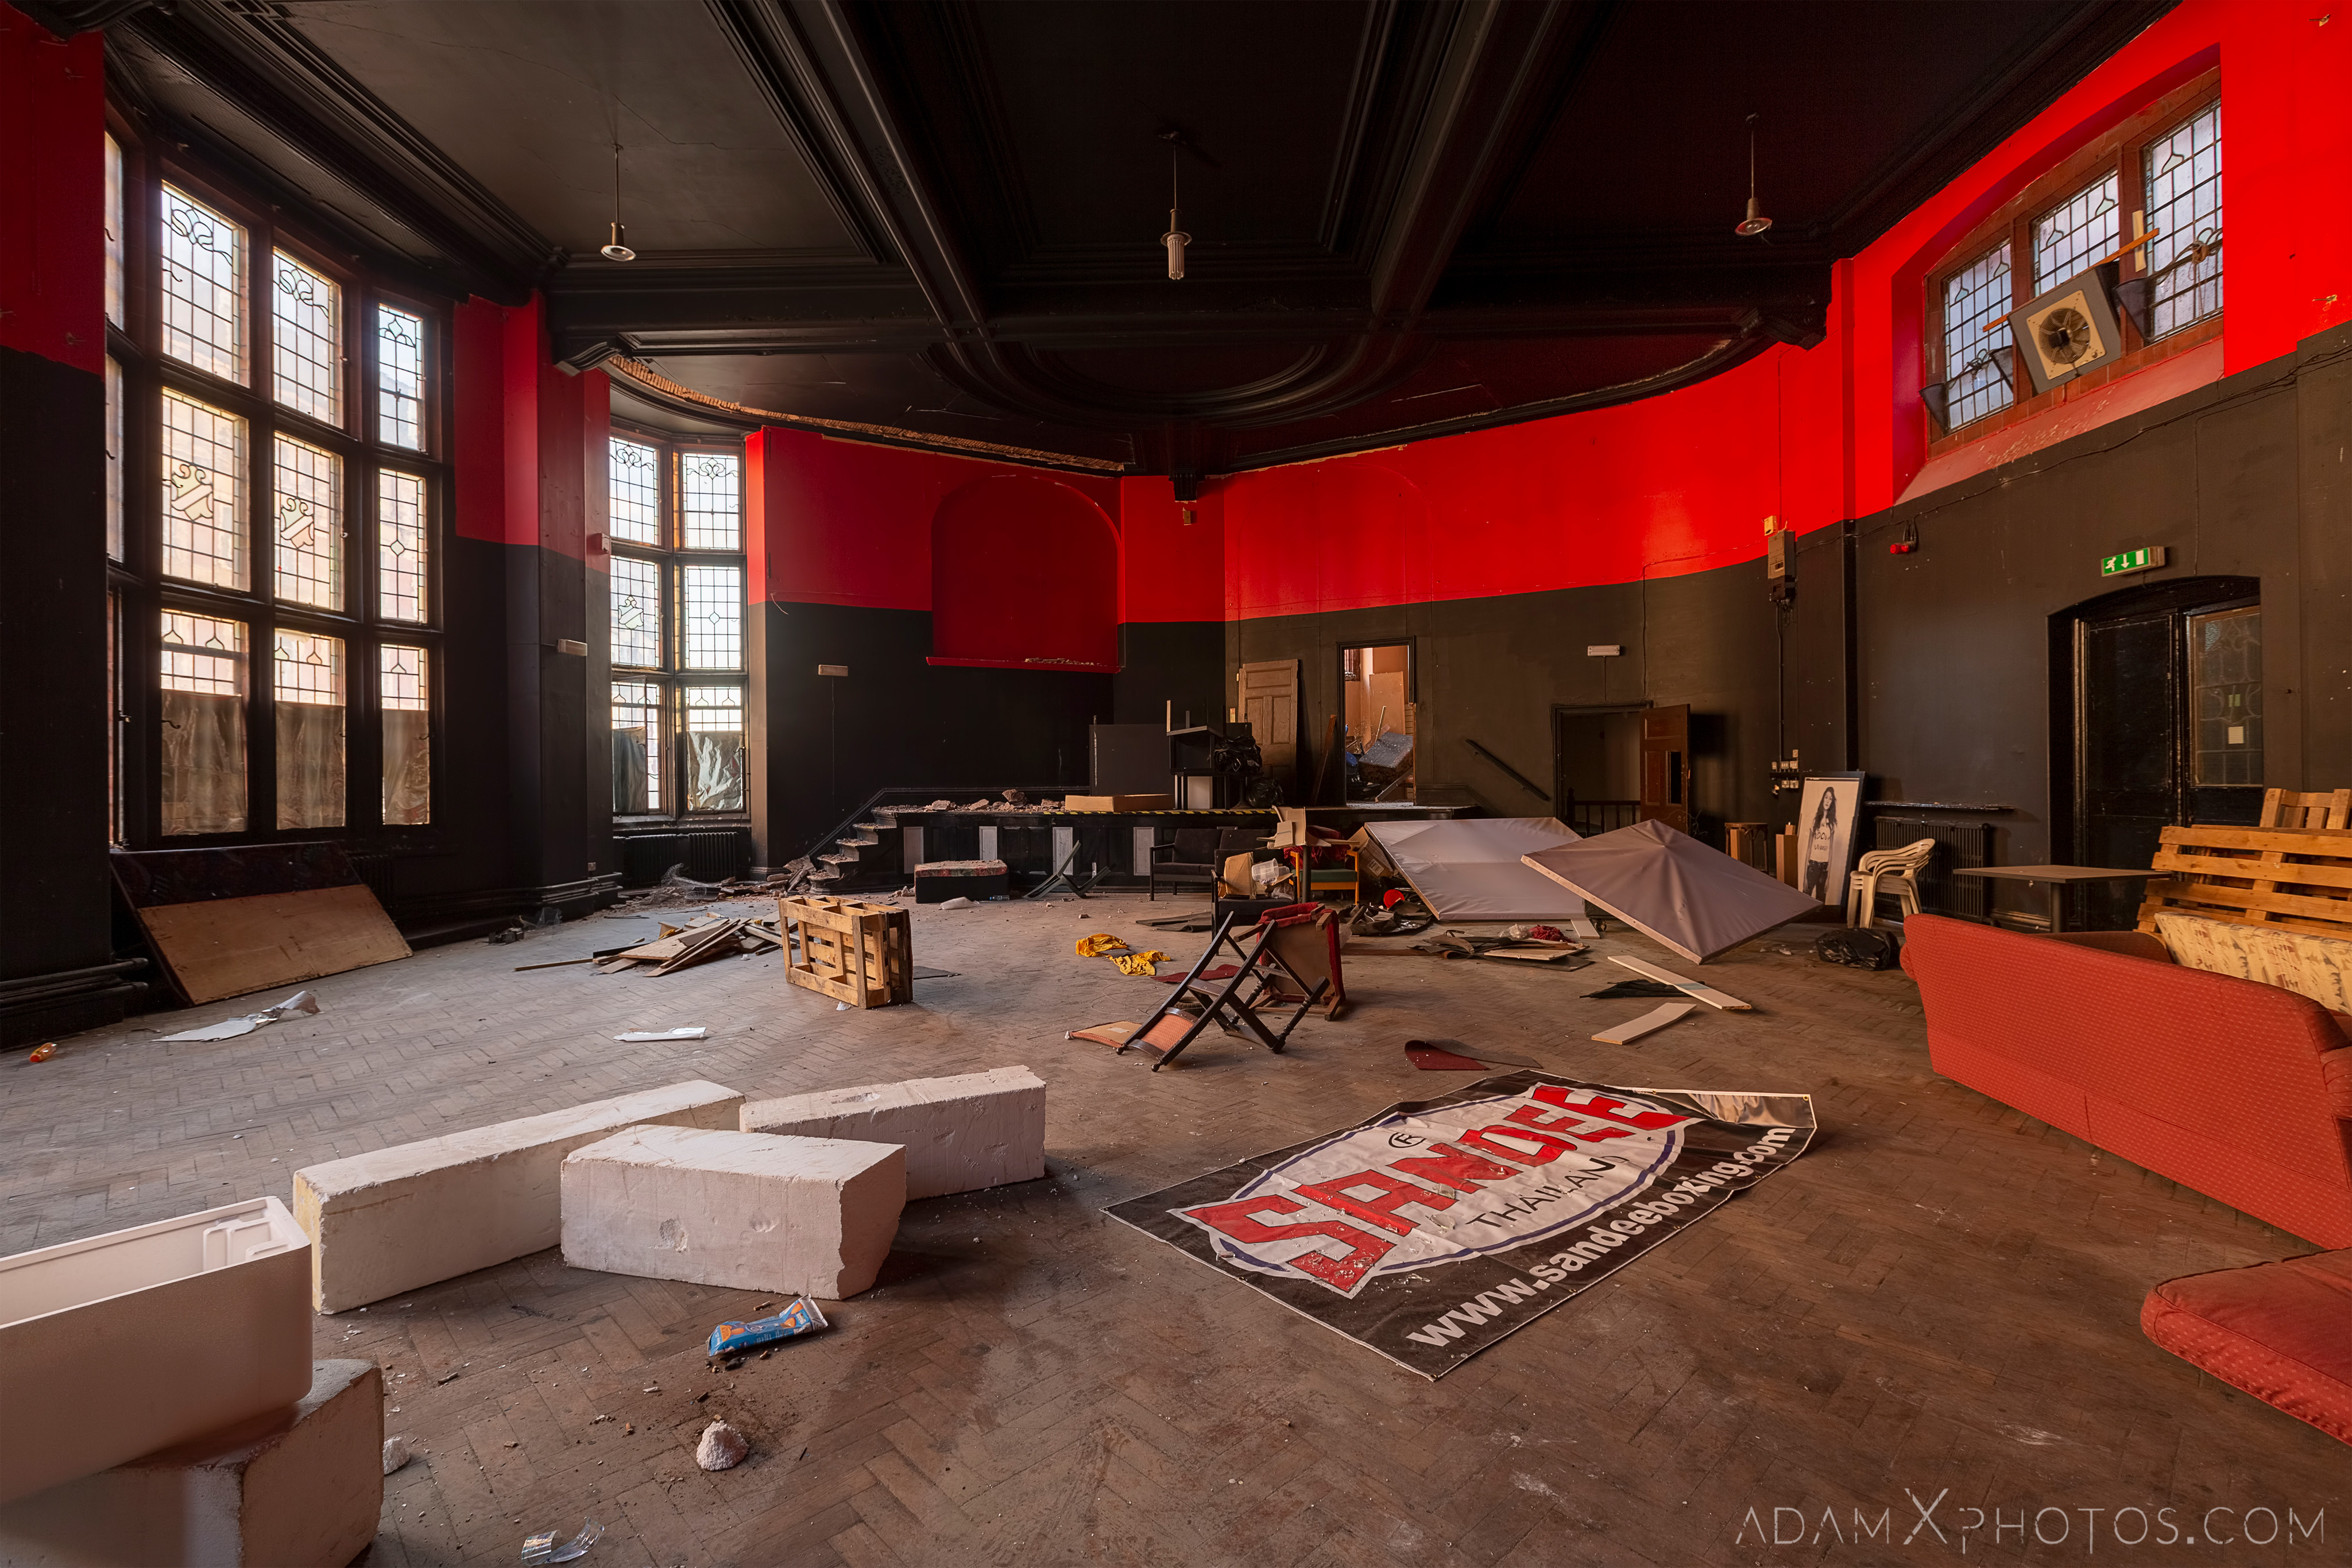 Red and black room boxing Birmingham Methodist Central Hall Q Club Adam X Urbex Urban Exploration Access 2018 Abandoned decay lost forgotten derelict location creepy haunting eerie